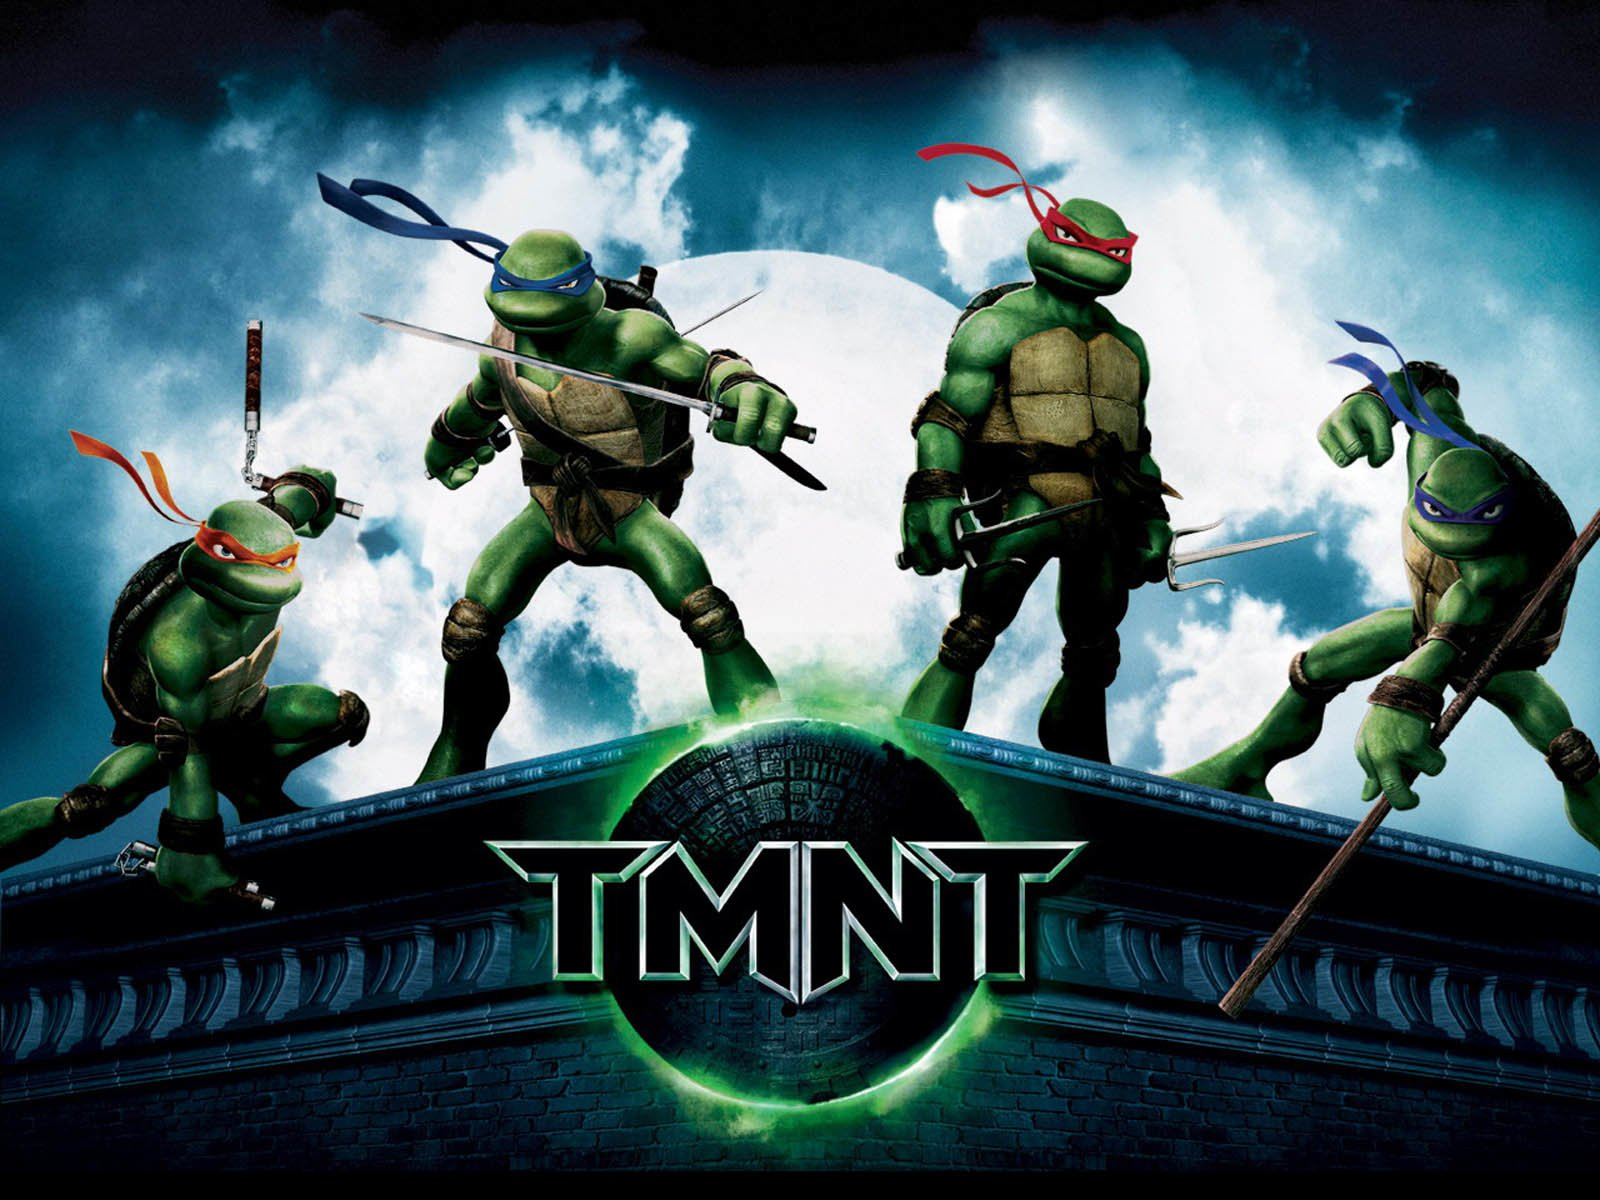 Cartoon - TMNT  Michelangelo (TMNT) Leonardo (TMNT) Donatello (TMNT) Raphael (TMNT) Wallpaper